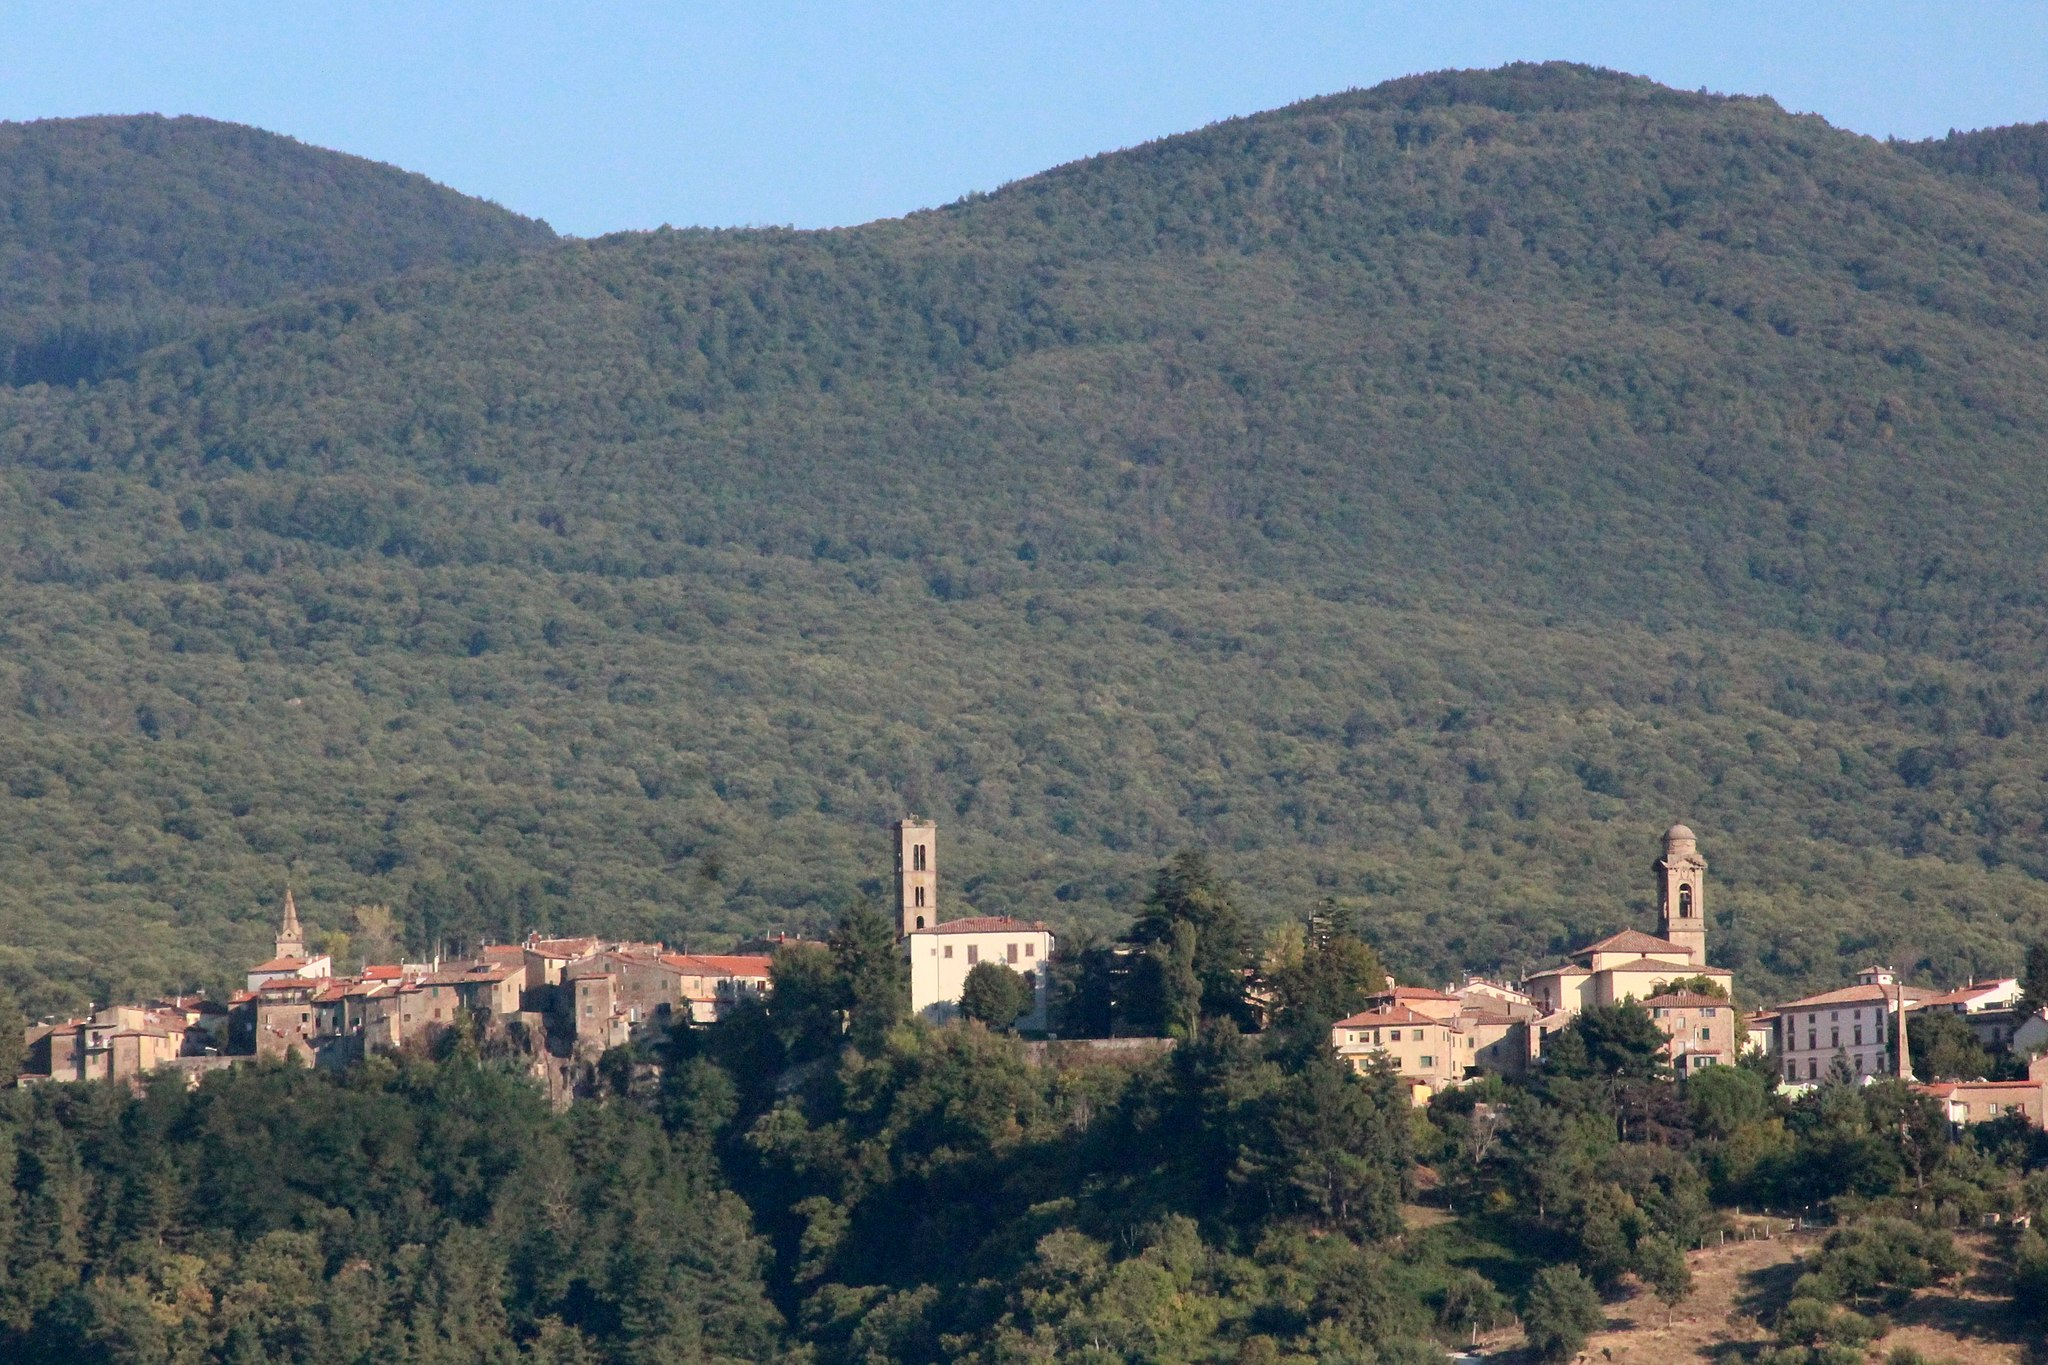 Panorama of Castel del Piano, Province of Grosseto, Tuscany